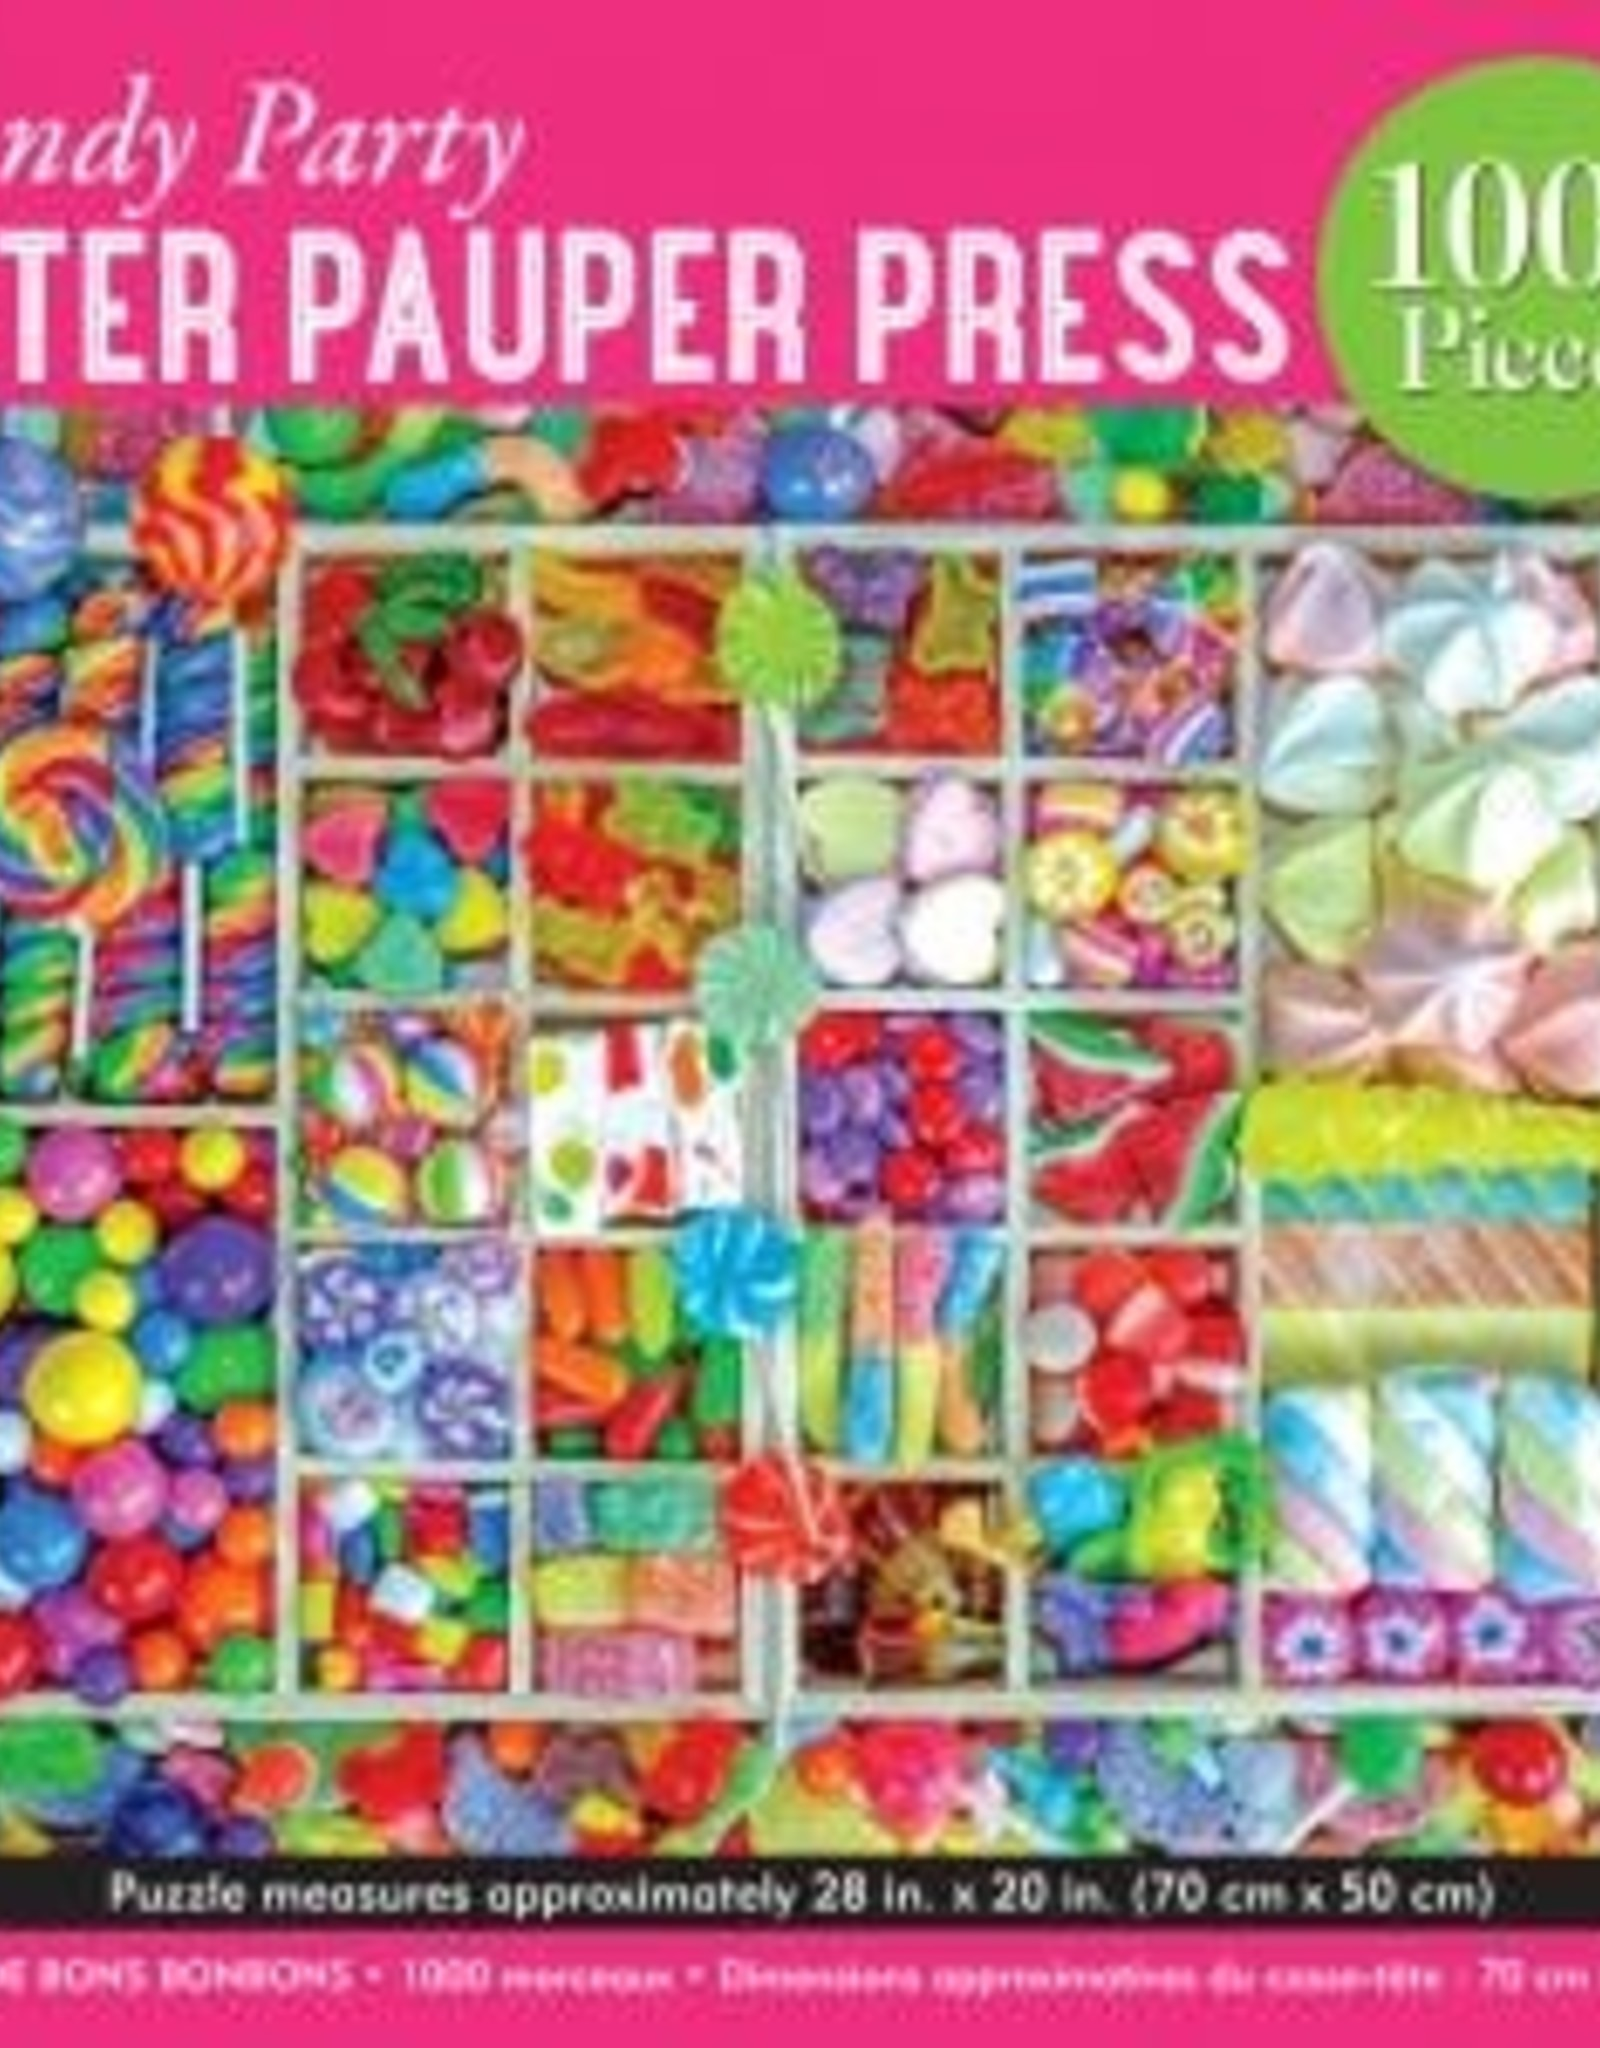 Peter Pauper Press CANDY PARTY 1000 PIECE JIGSAW PUZZLE